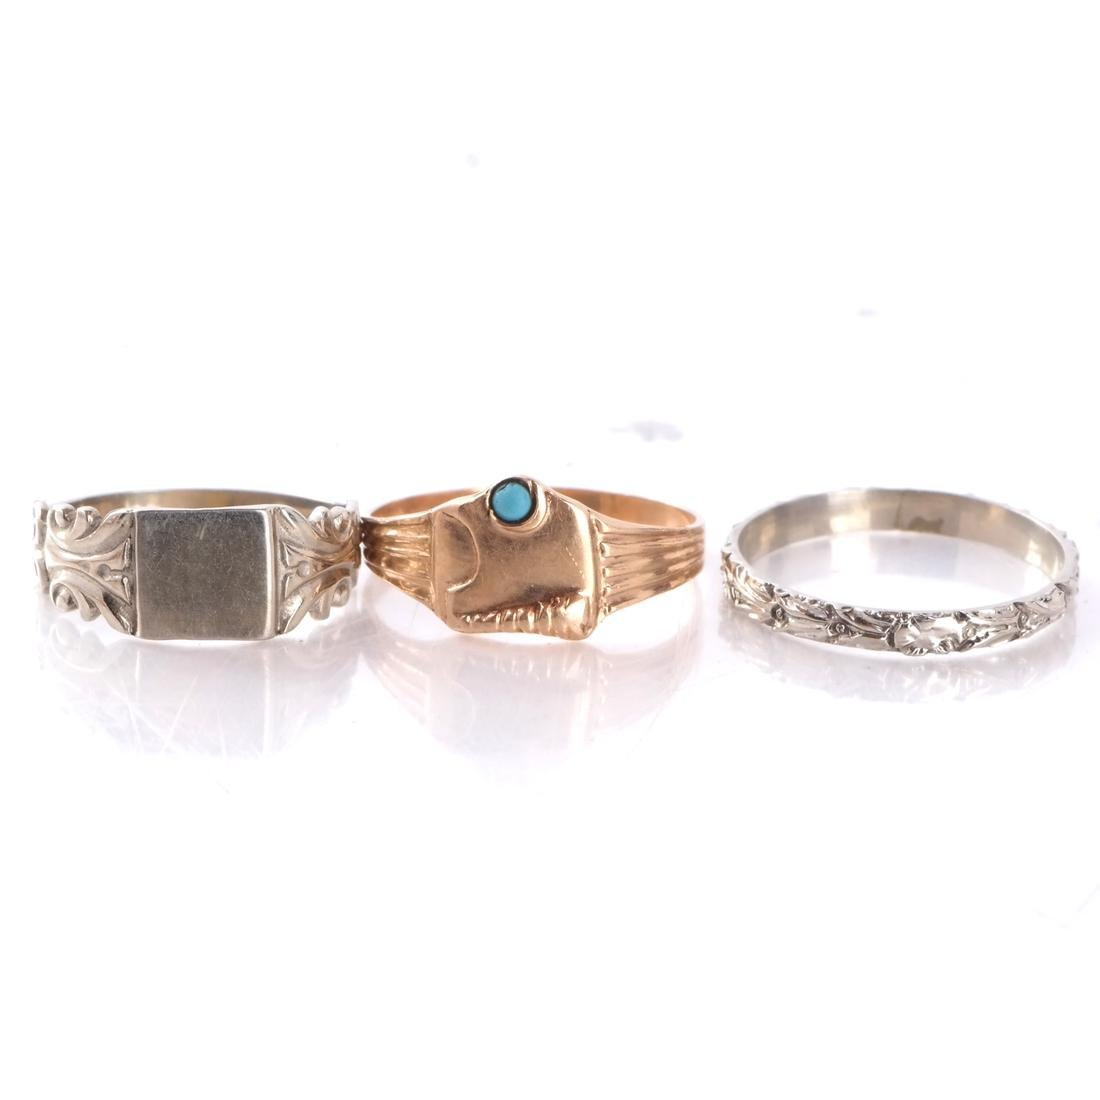 14k Baby's Rings in White and Yellow Gold - 4